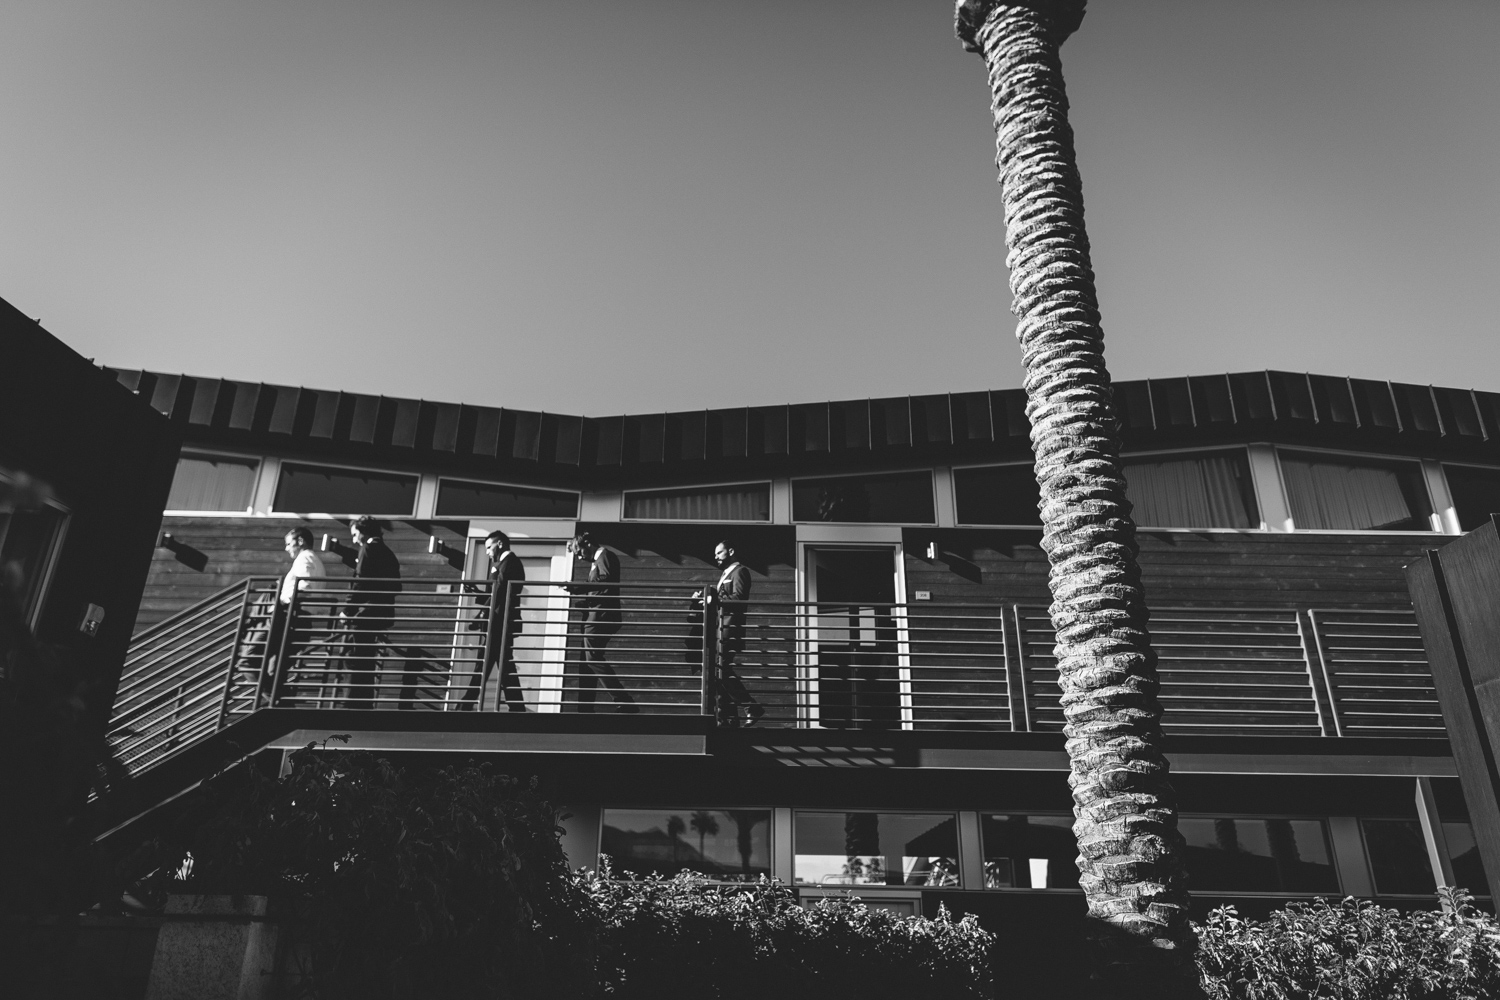 westlund-photography-palm-springs-wedding-13.jpg